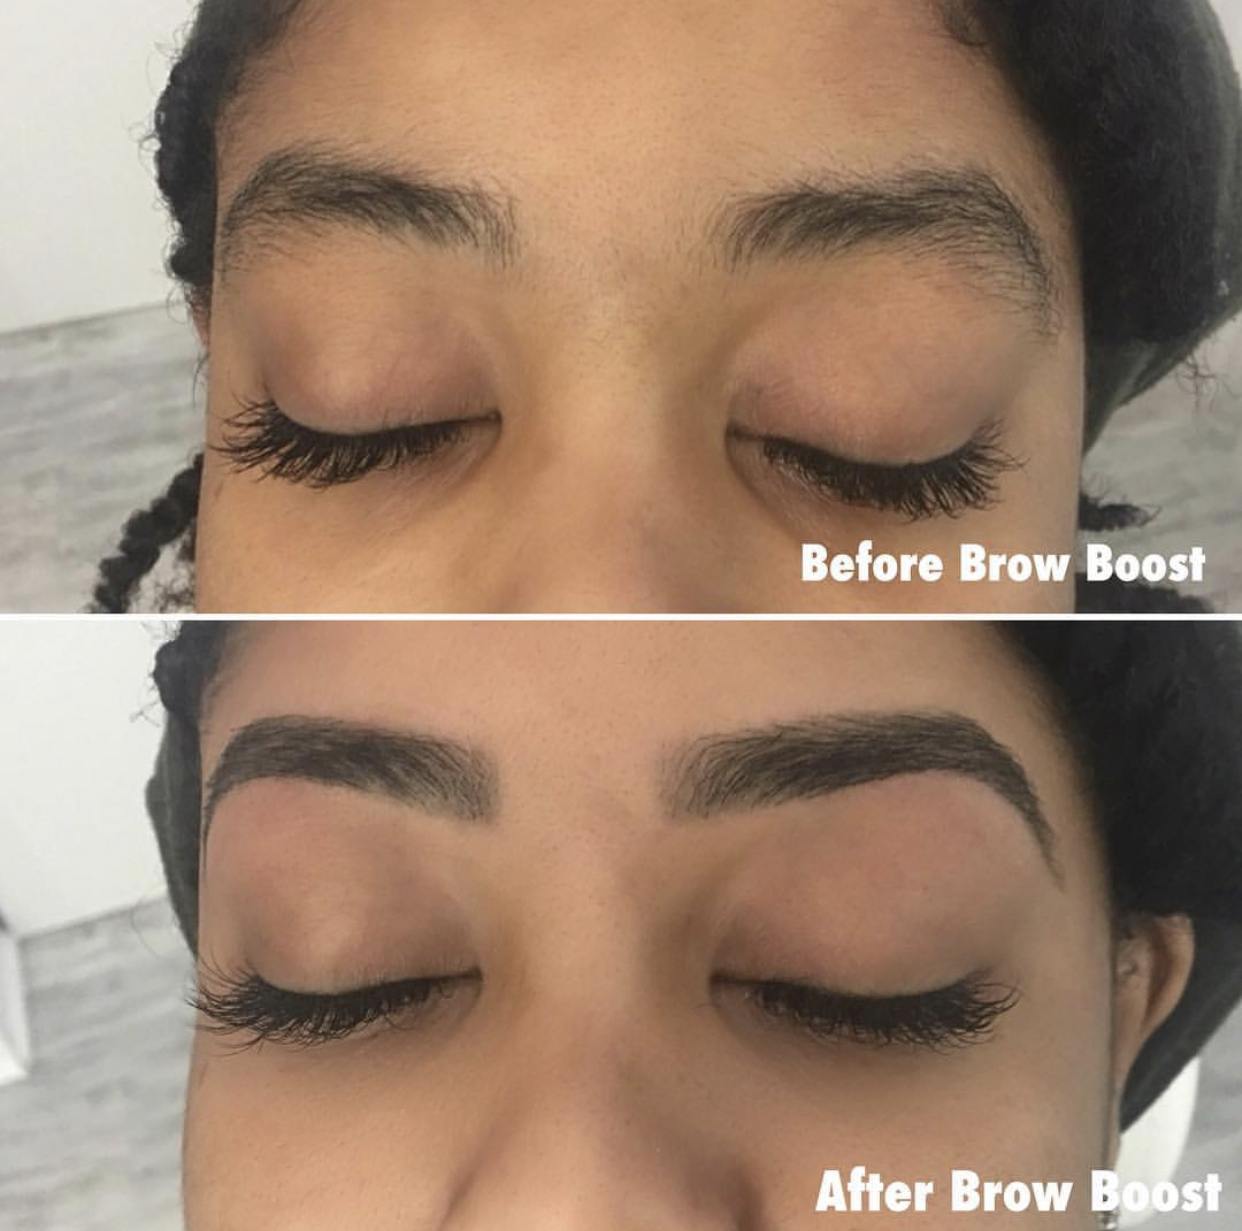 Brow Boost pic.png